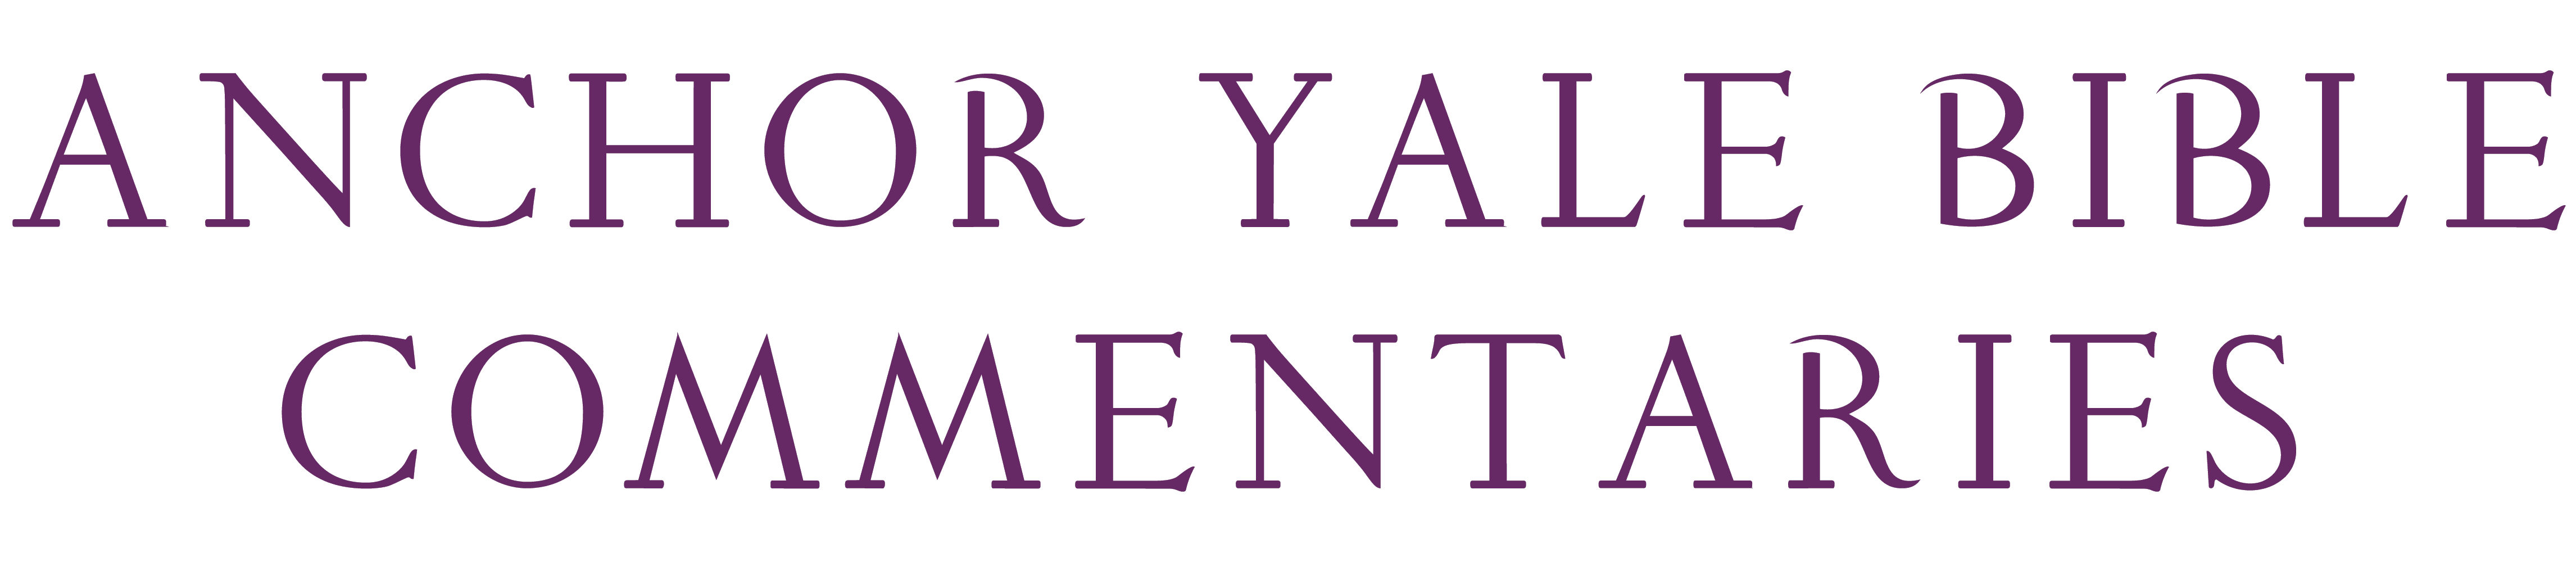 Anchor Yale Bible Commentaries logo